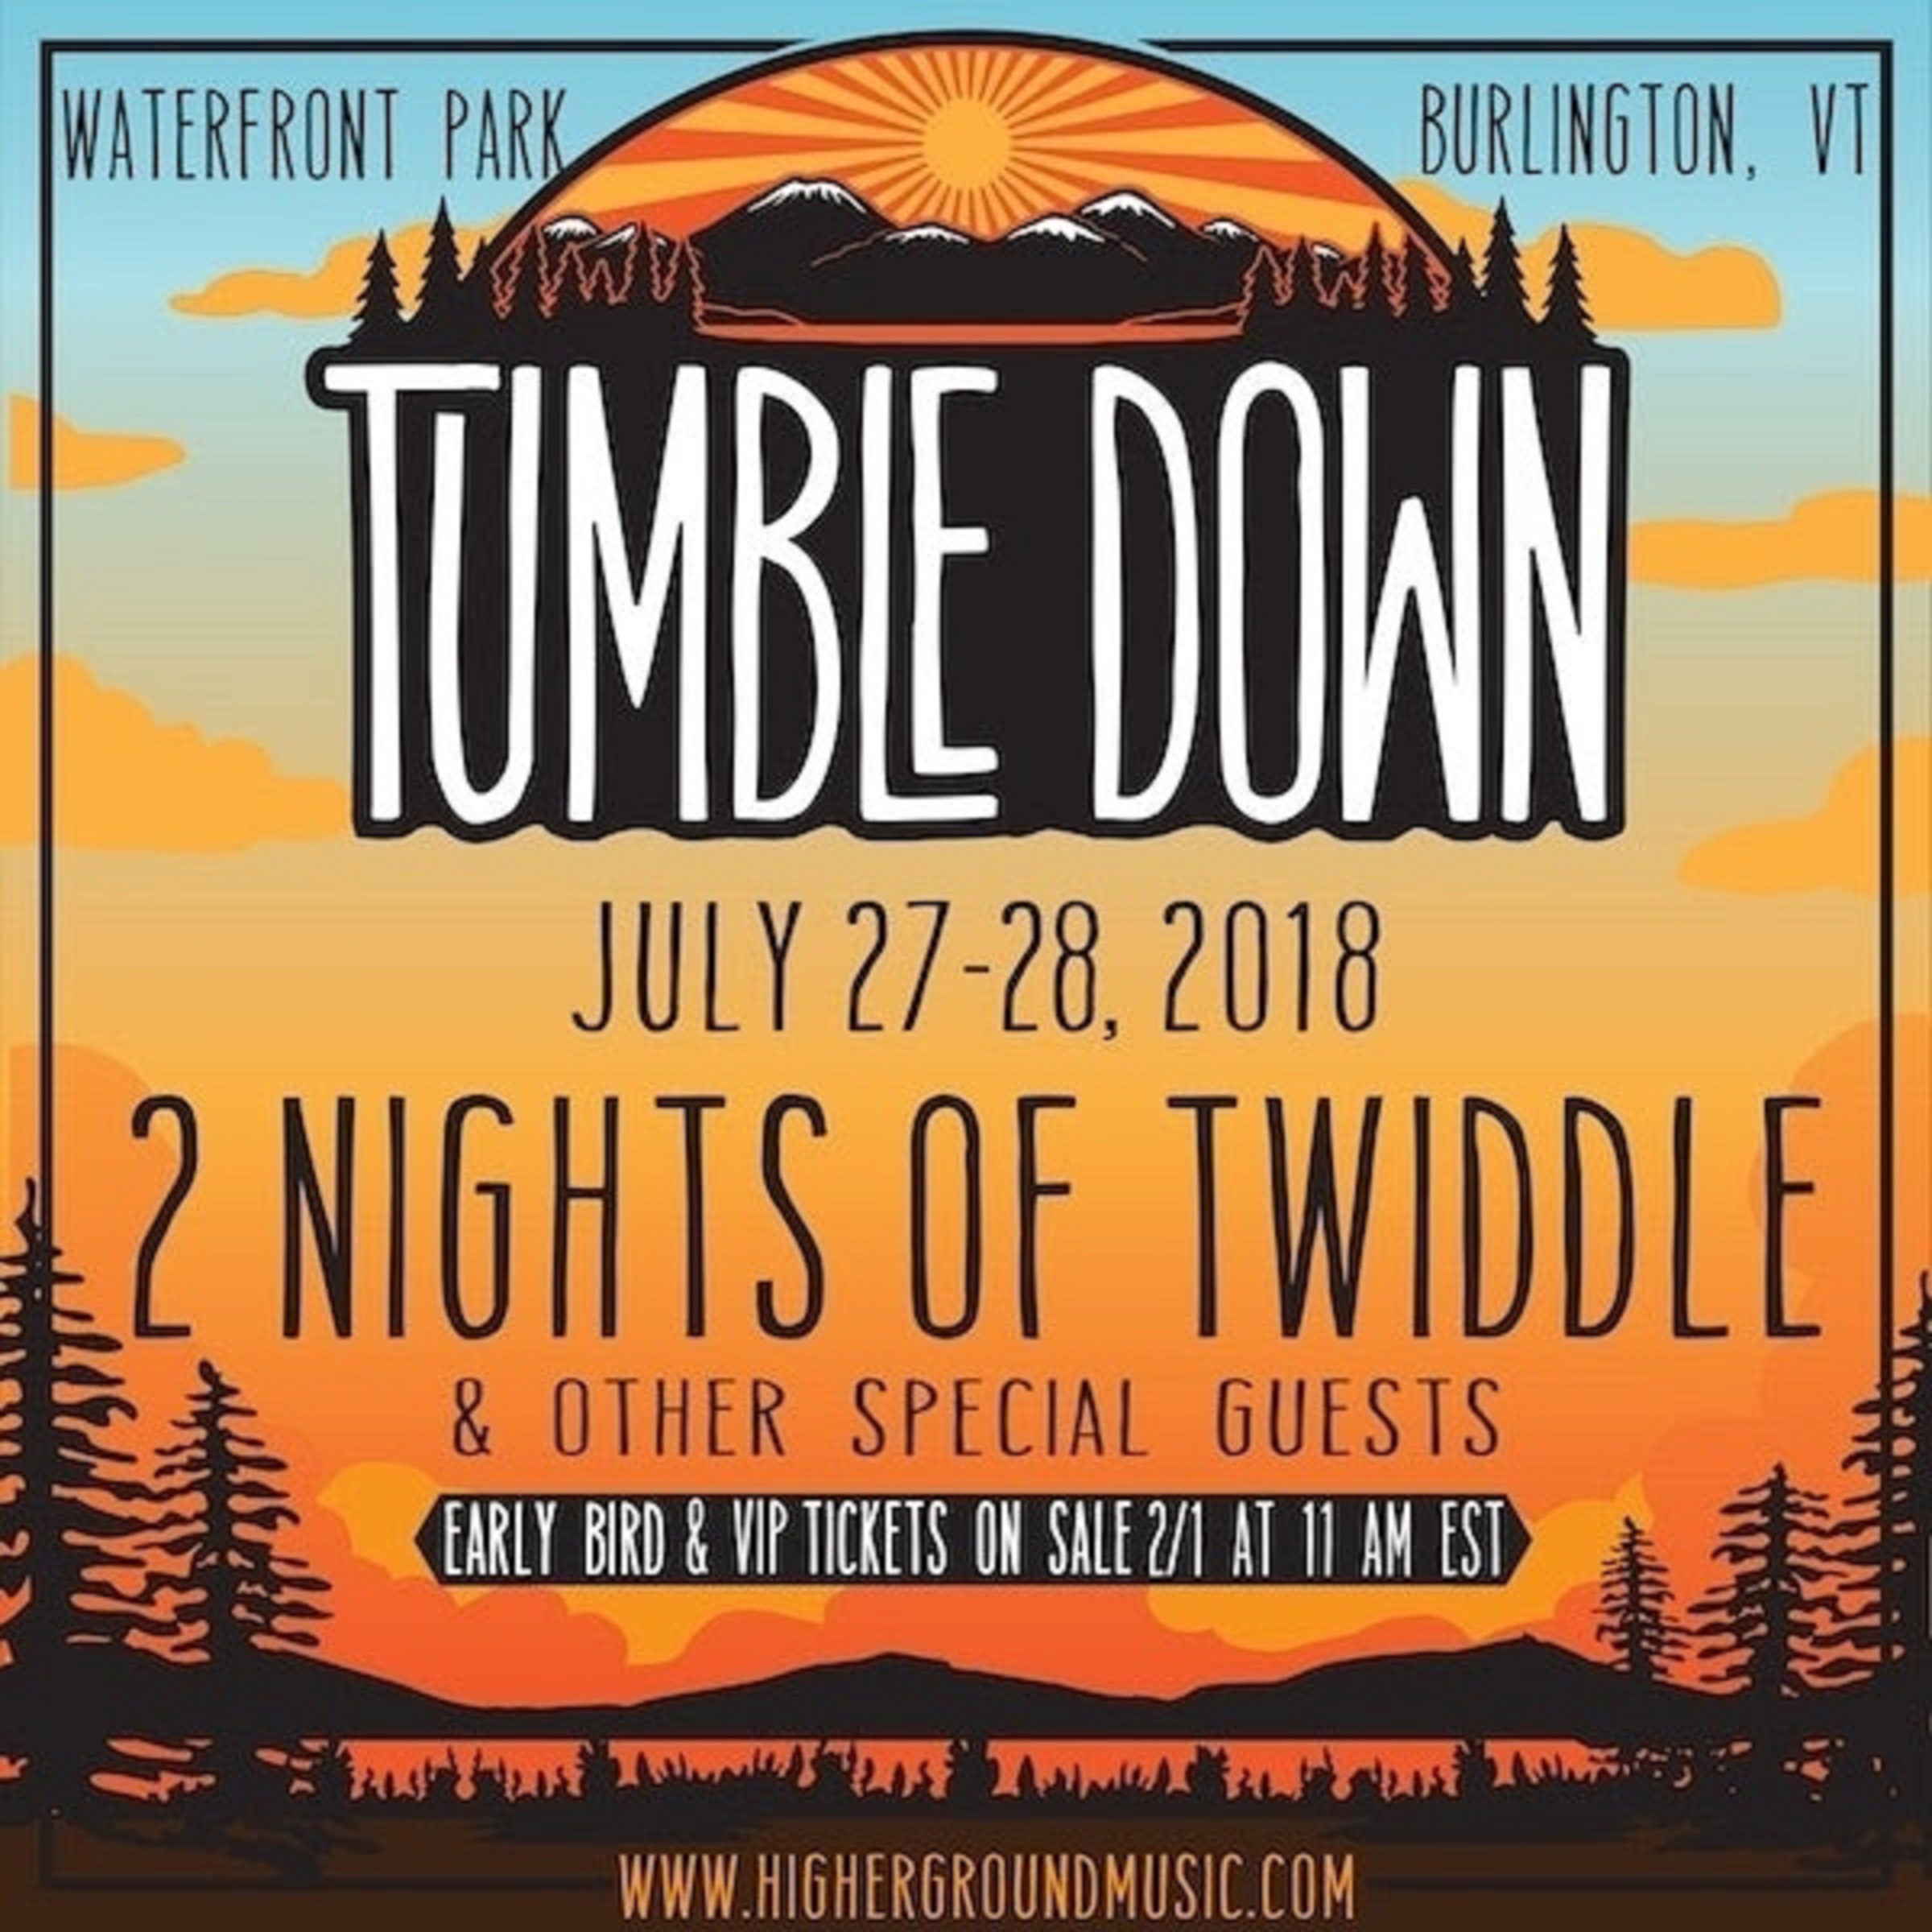 Twiddle's Tumble Down Returns to Waterfront on July 27th & 28th